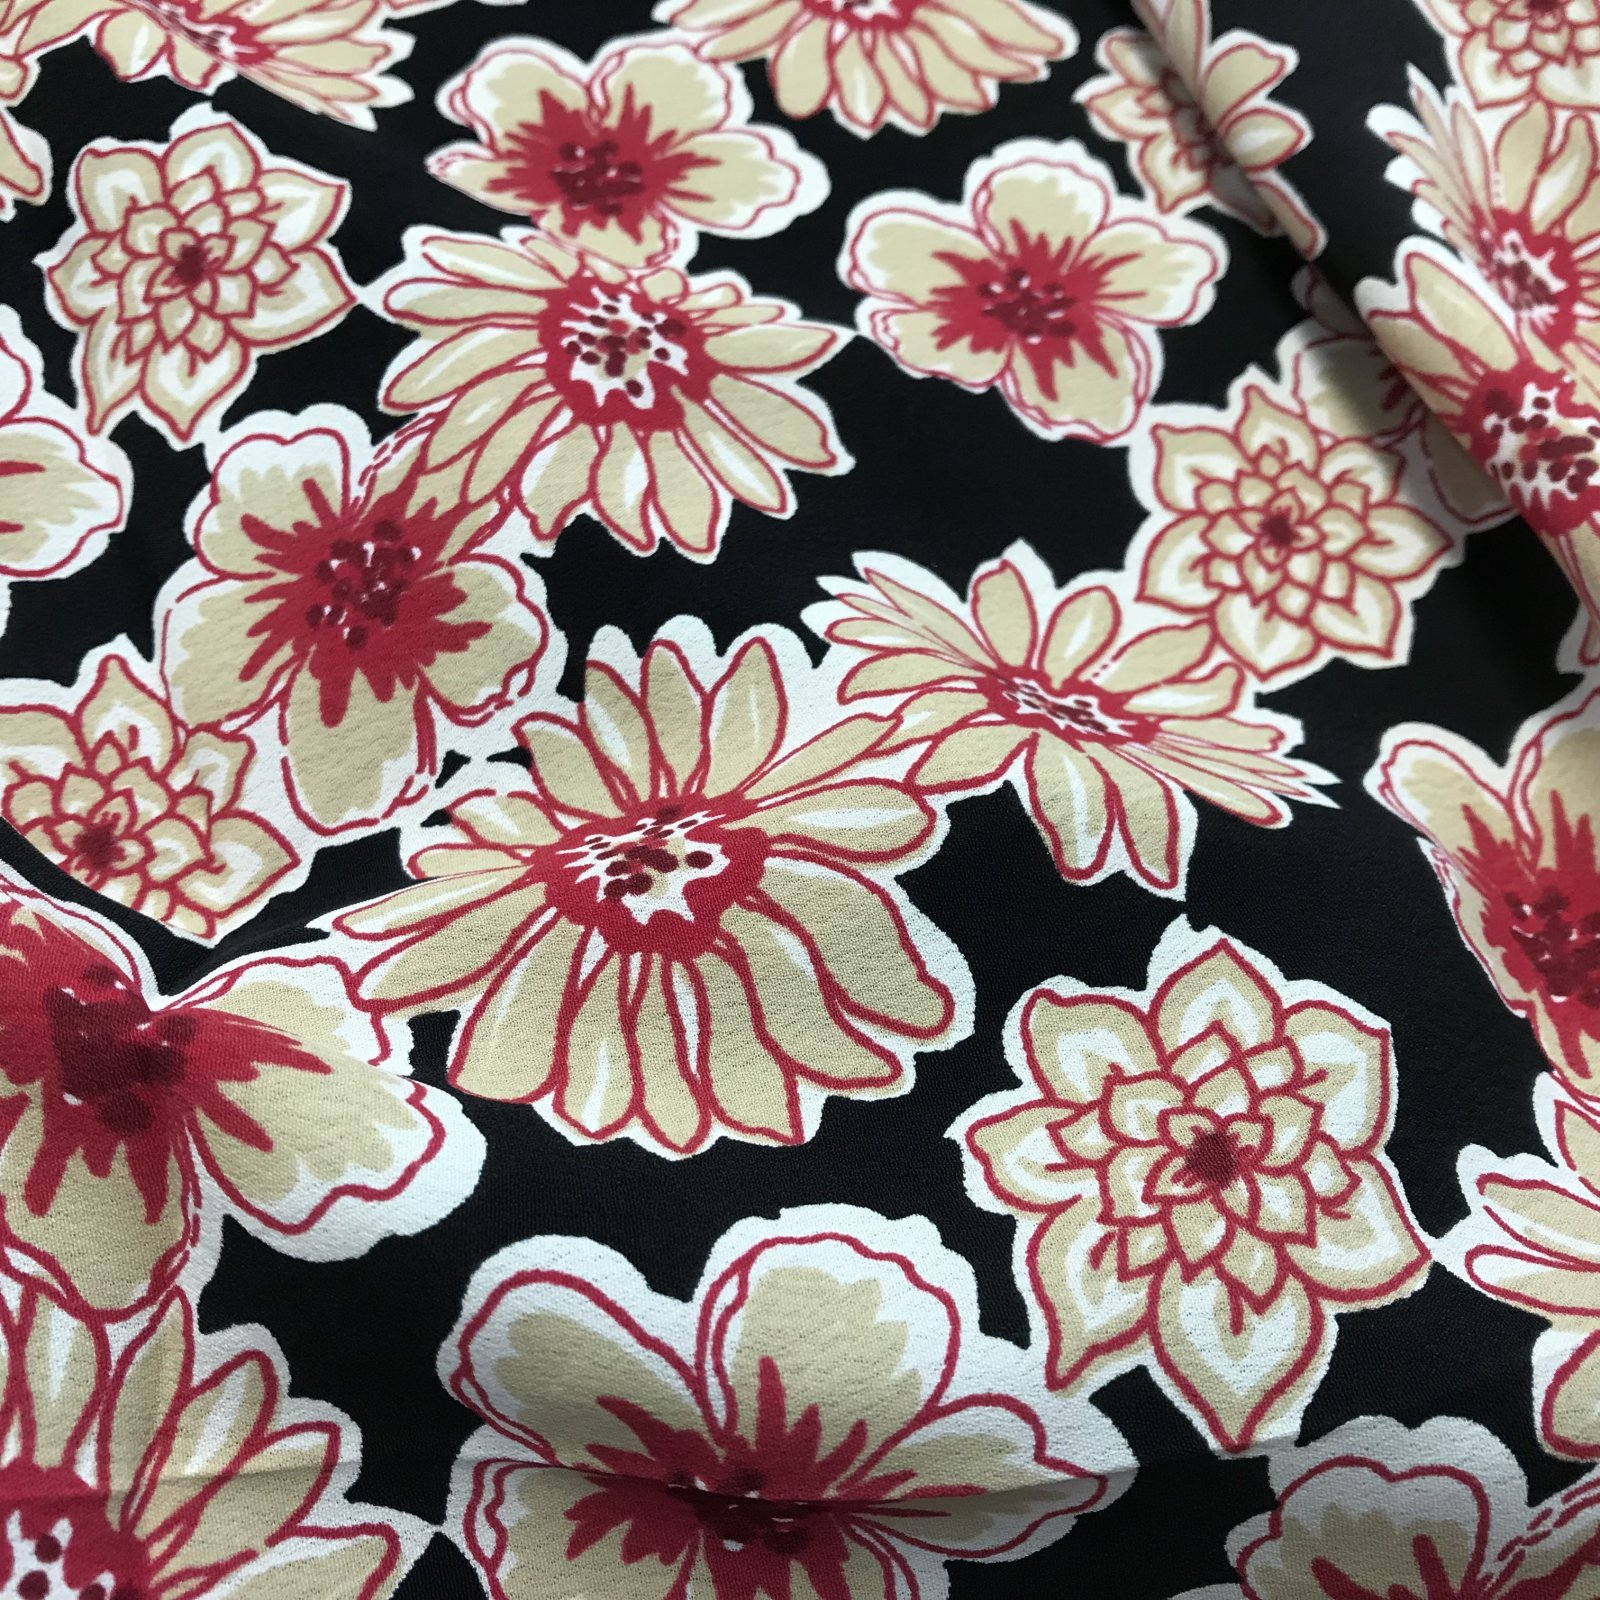 Rayon Crepe - Red Flowers